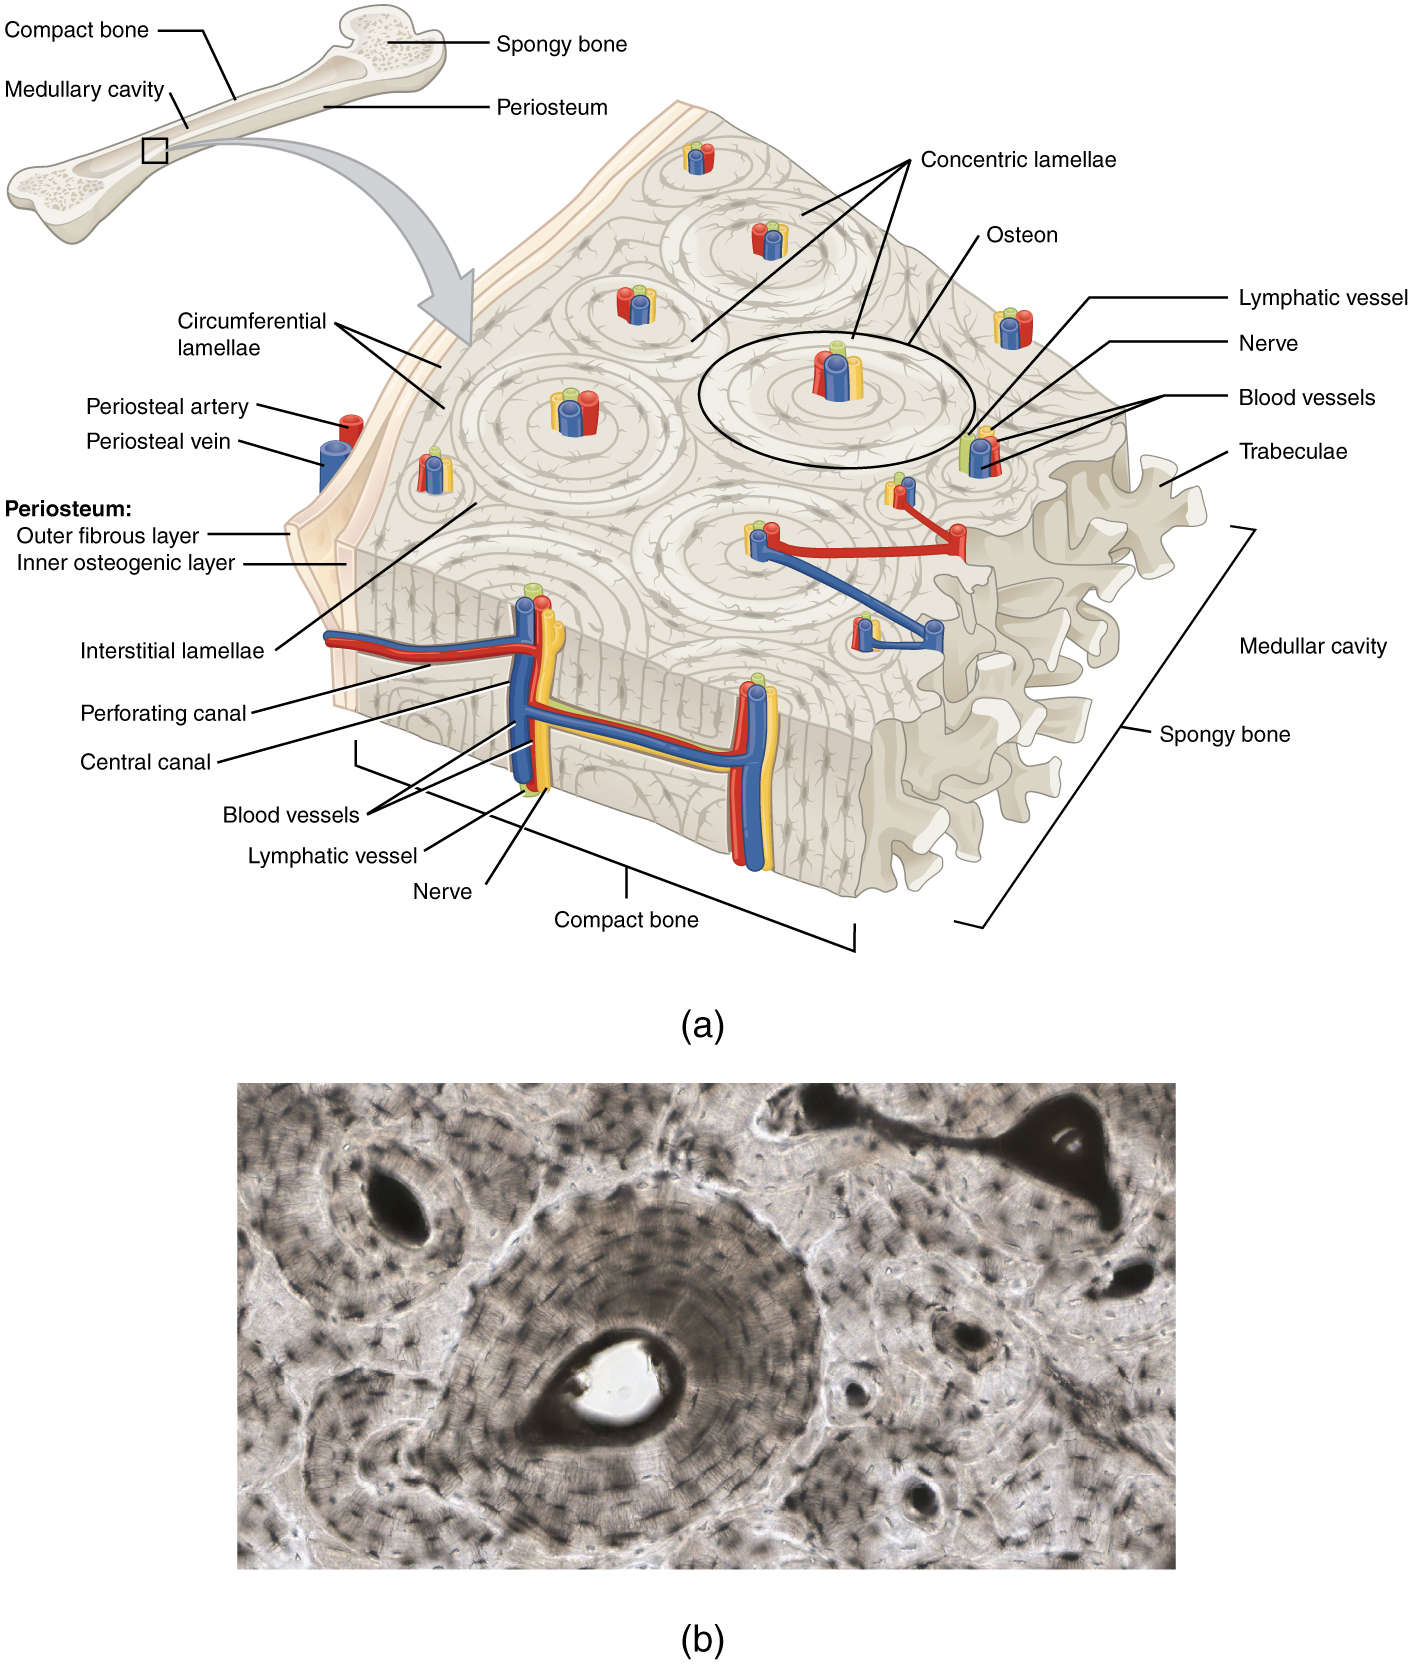 Bone structure anatomy and physiology diagram of compact bone pooptronica Choice Image